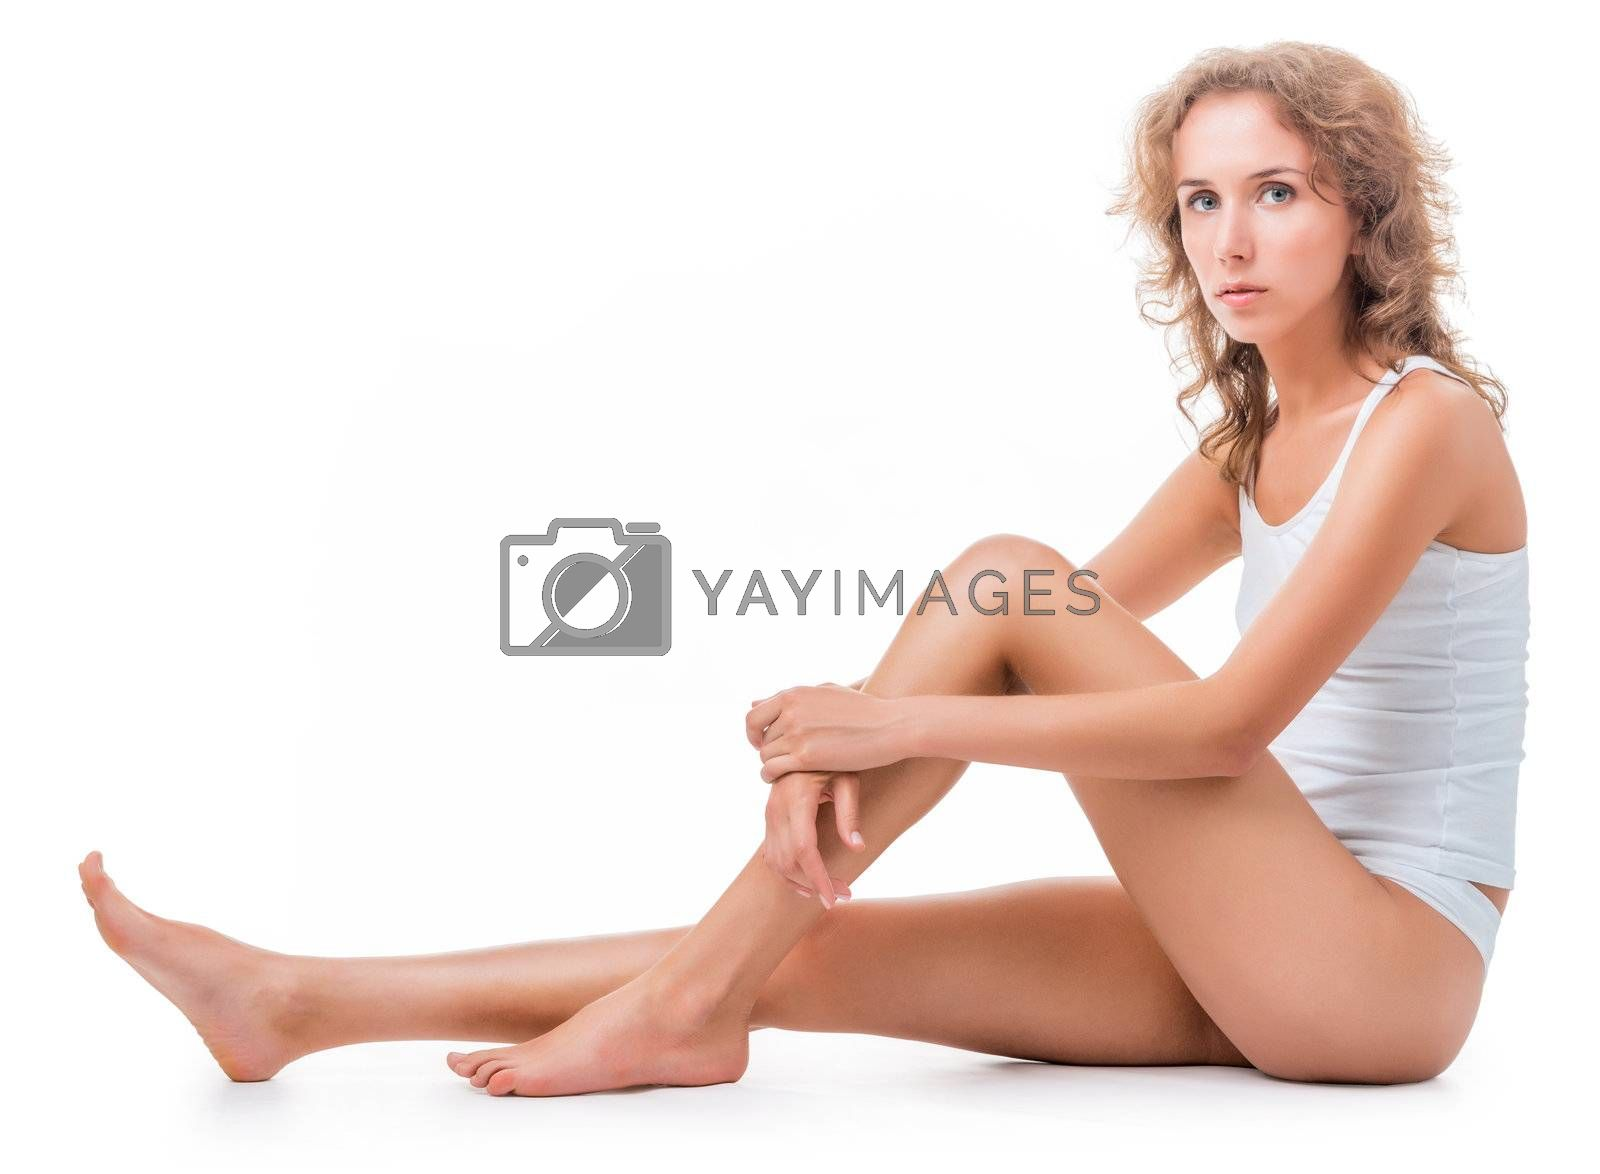 figure of a seated young woman in lingerie. Isolation on white background